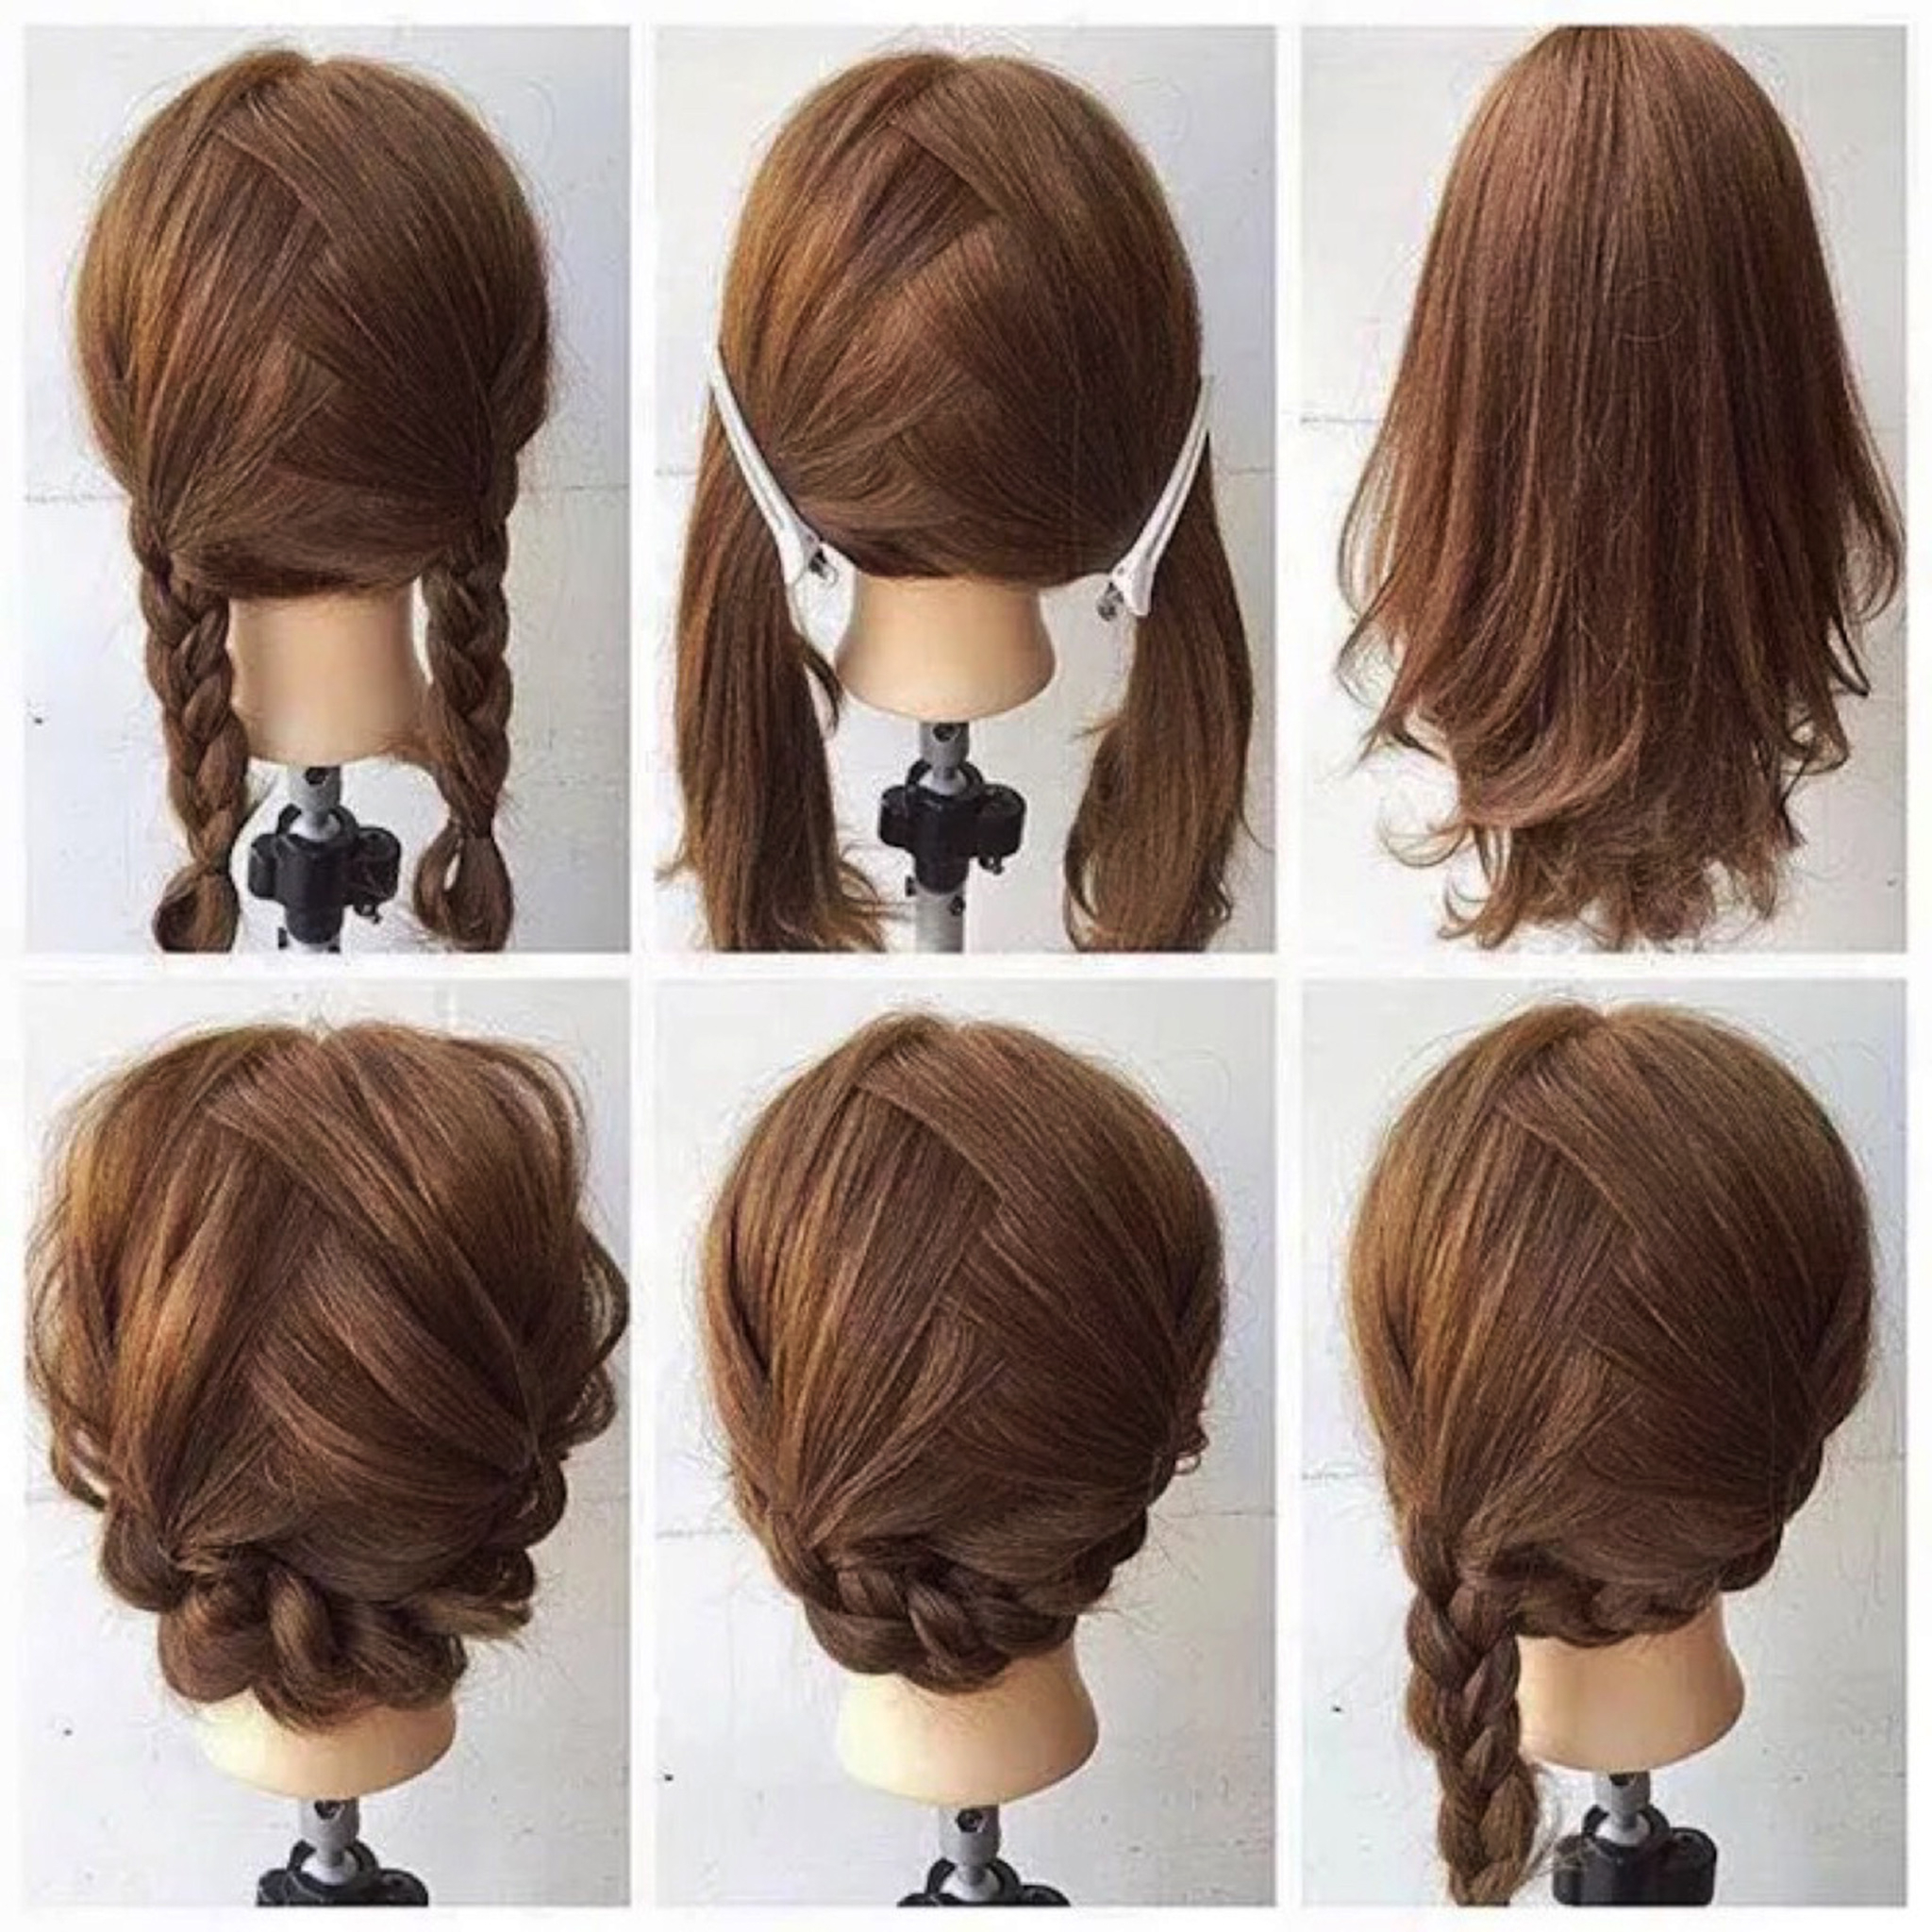 Braided Hairstyles For Mixed Hair Tags : Braided Hairstyles For Favorite Braided Shoulder Length Hairstyles (View 6 of 20)